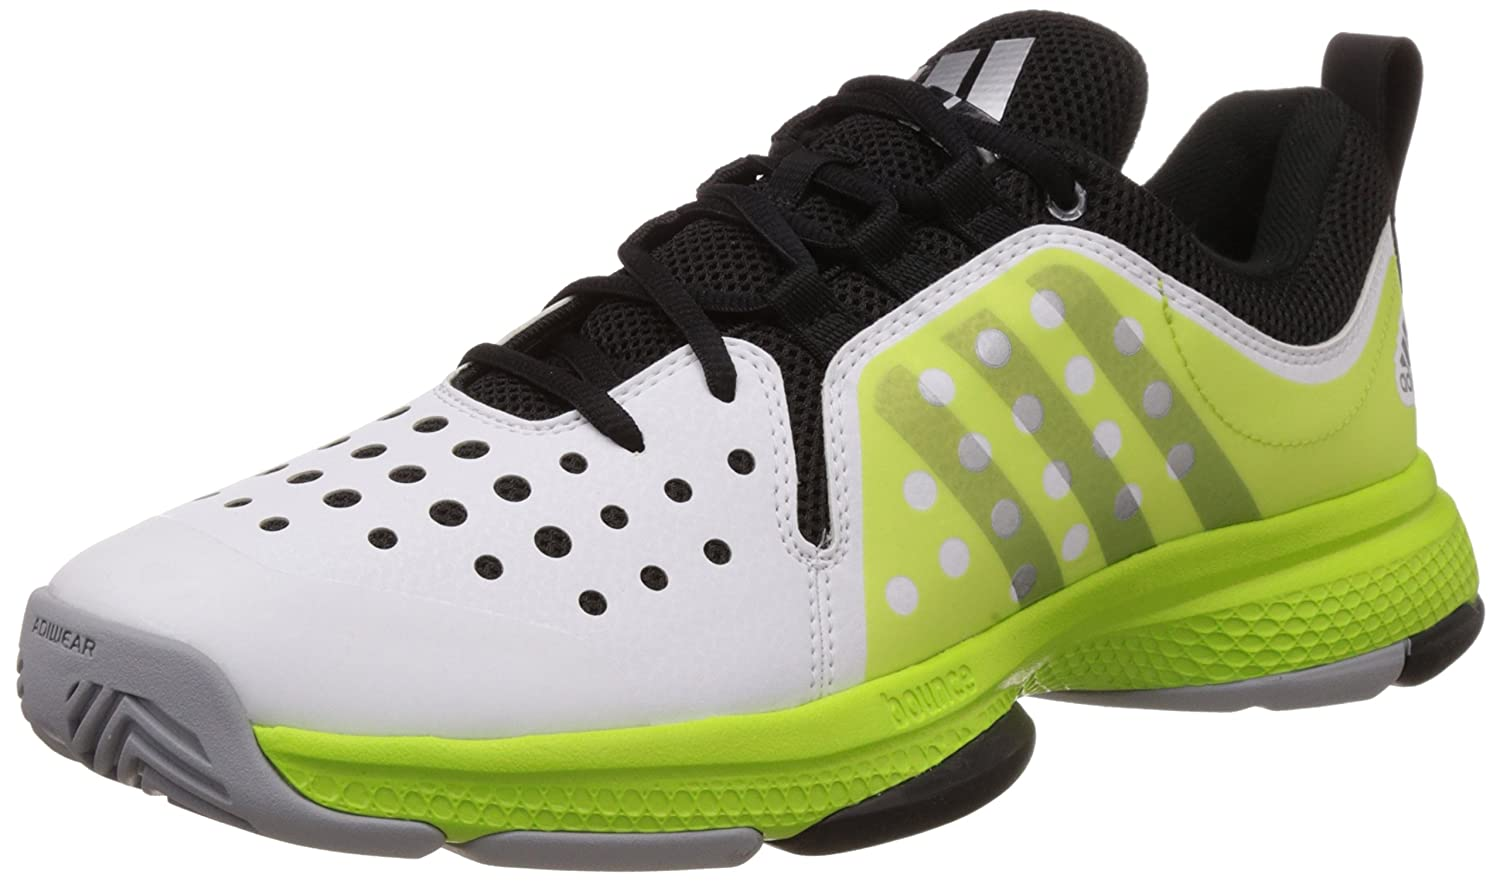 adidas Men\u0027s Barricade Classic Bounce White, Black and Yellow Mesh Tennis  Shoes - 11 UK: Buy Online at Low Prices in India - Amazon.in